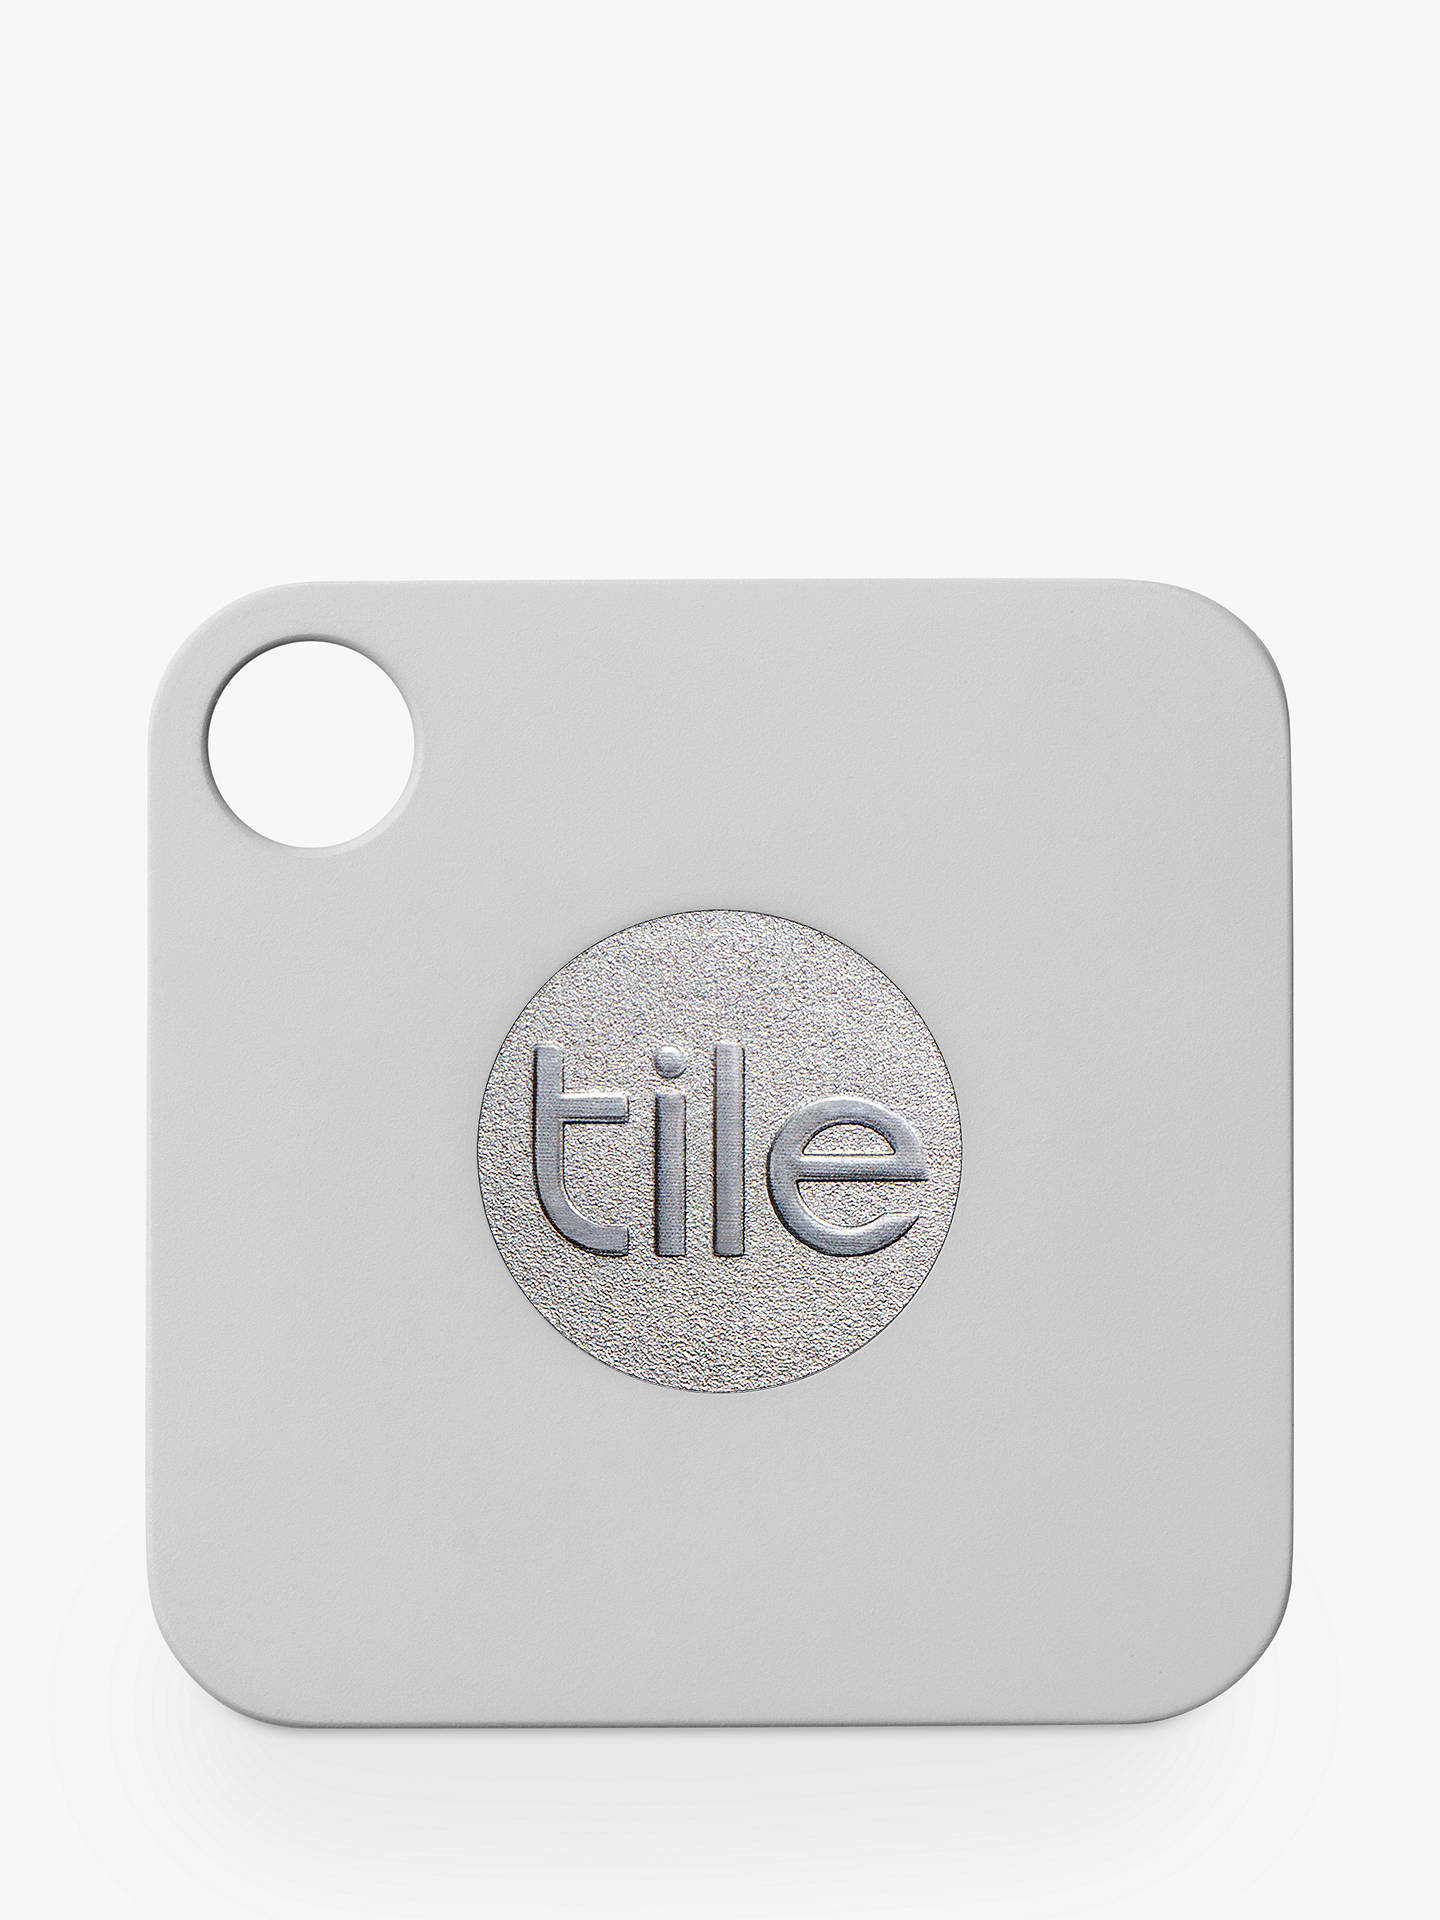 Buy Tile Mate, Phone, Keys, Item Finder, 4 Pack Online at johnlewis.com